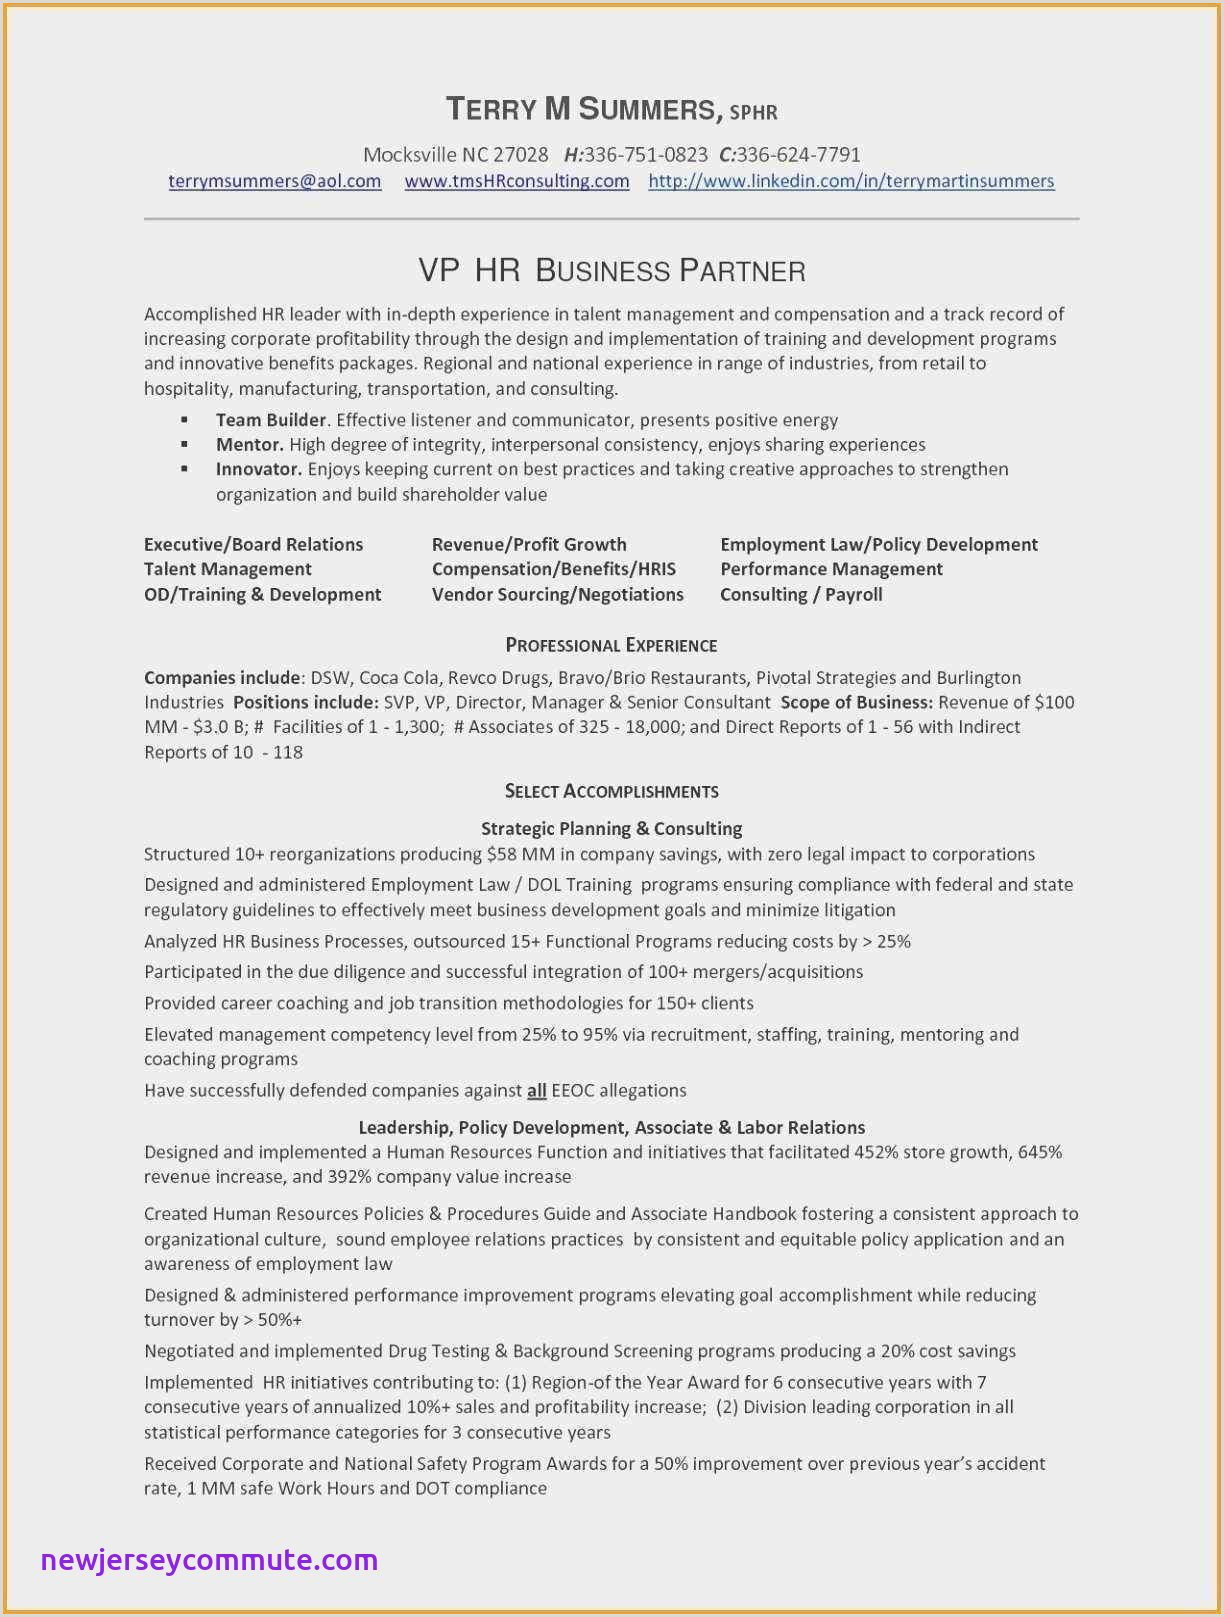 Fashion Retail Cover Letter Sample Resume for Clothing Sales associate Elegant Cover